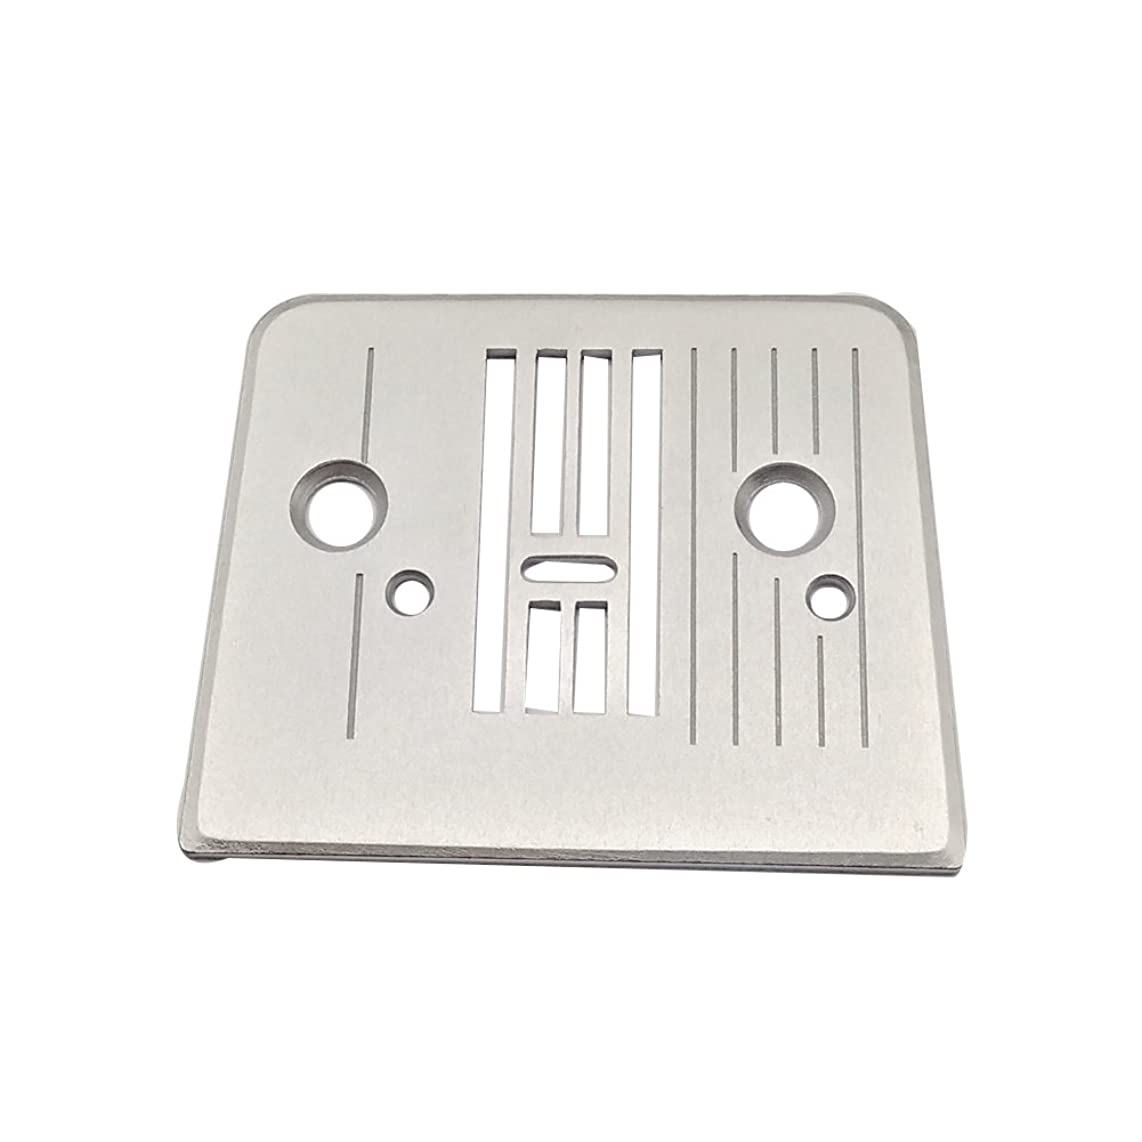 HONEYSEW NEEDLE PLATE For BROTHER LS2125B,LS2150,LS2160,XL5020,XL5021,XL5022#XA3954121